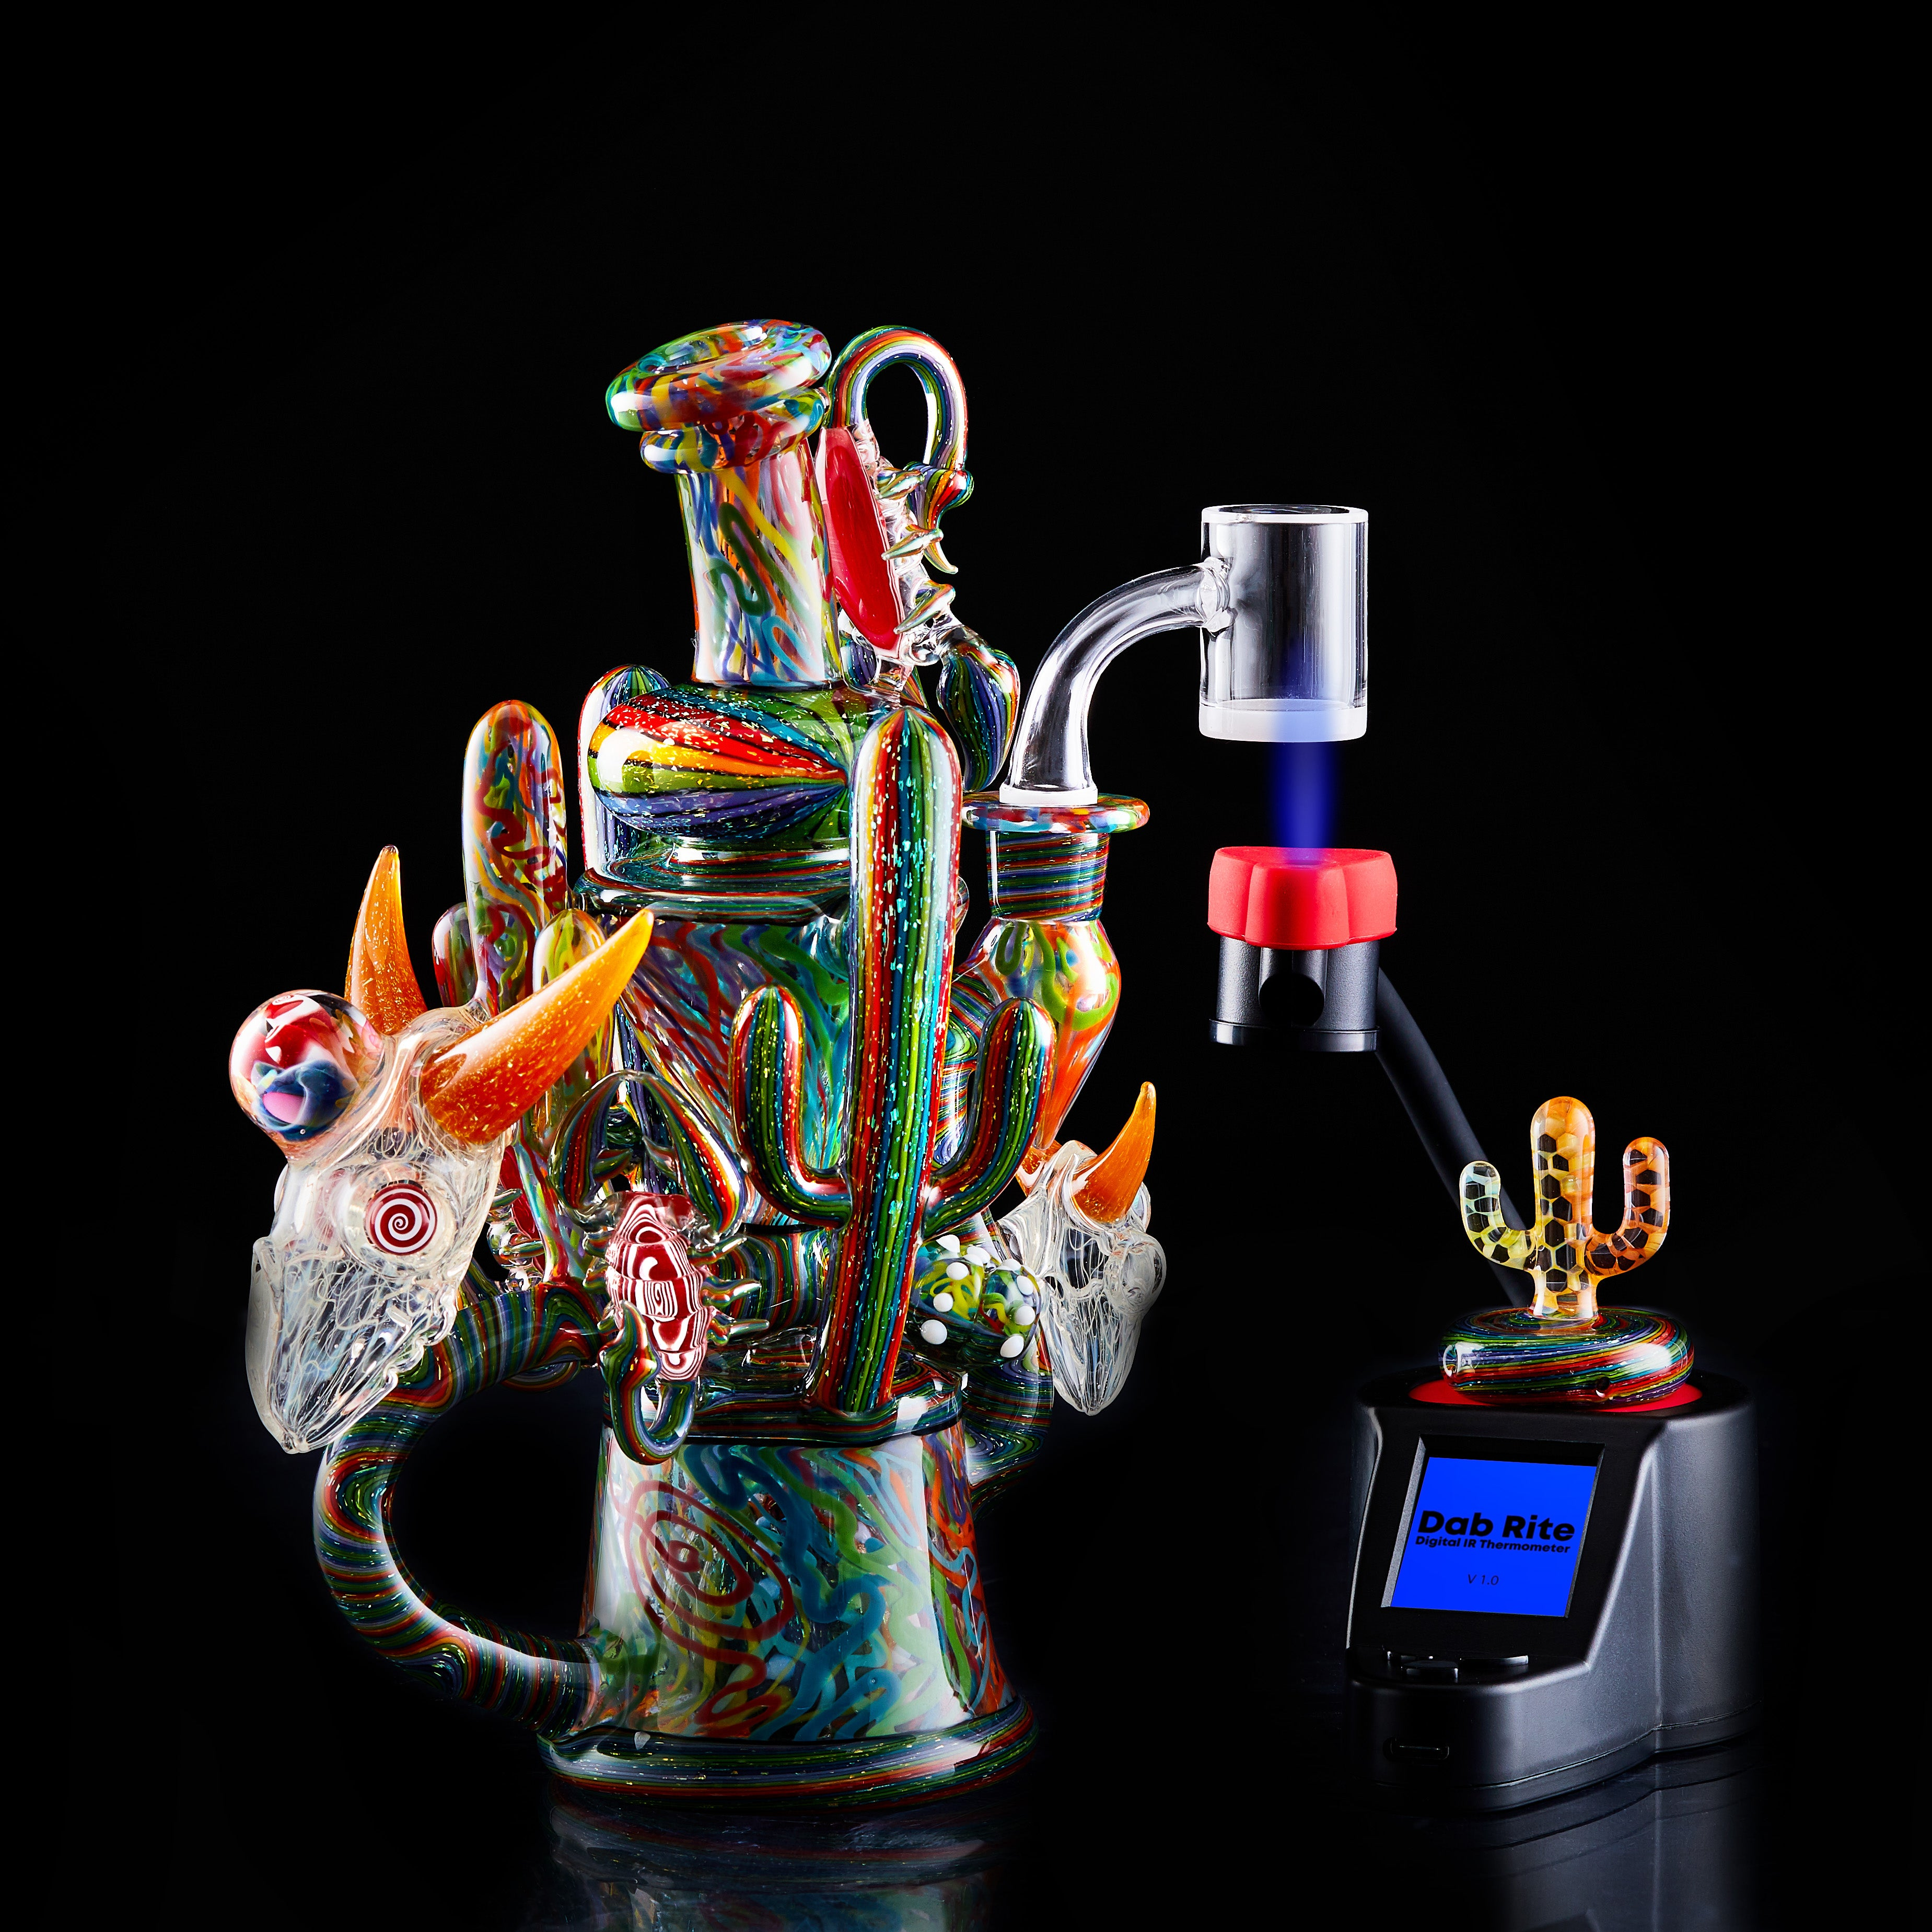 Dab Rite IR thermometer is the perfect dab thermometer for heady glass set ups